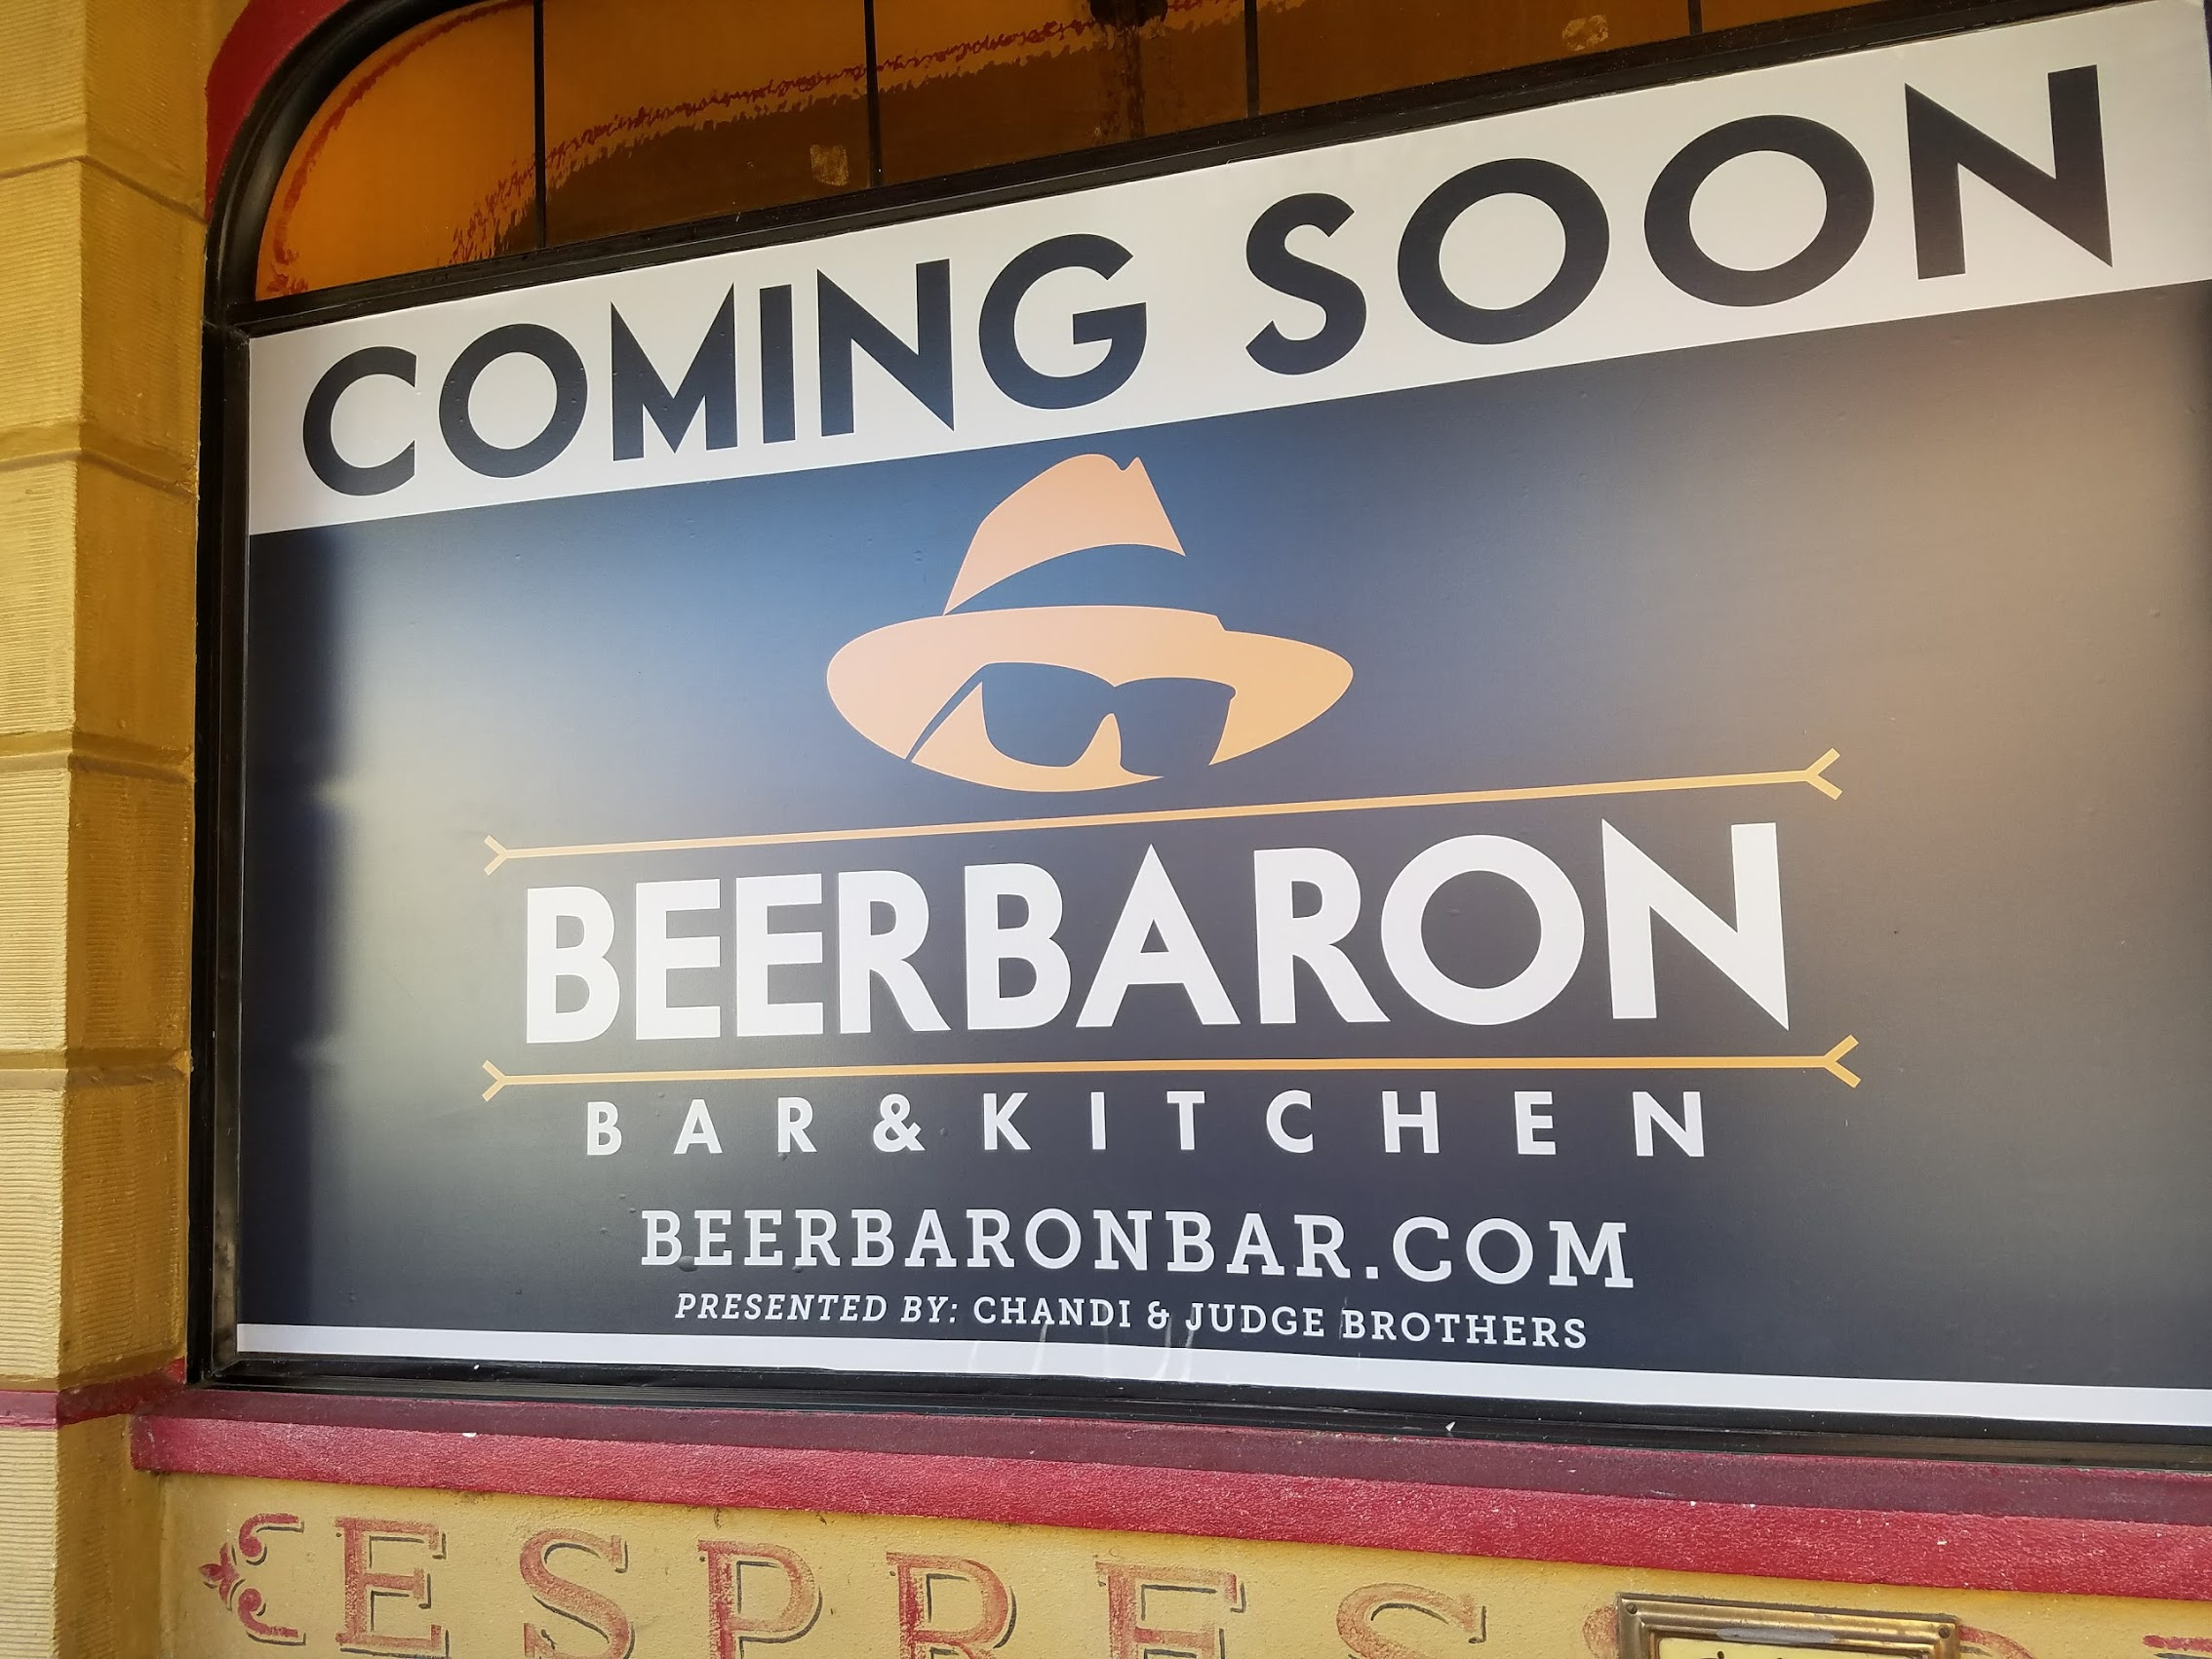 Beer Baron is coming soon to Santa Rosa